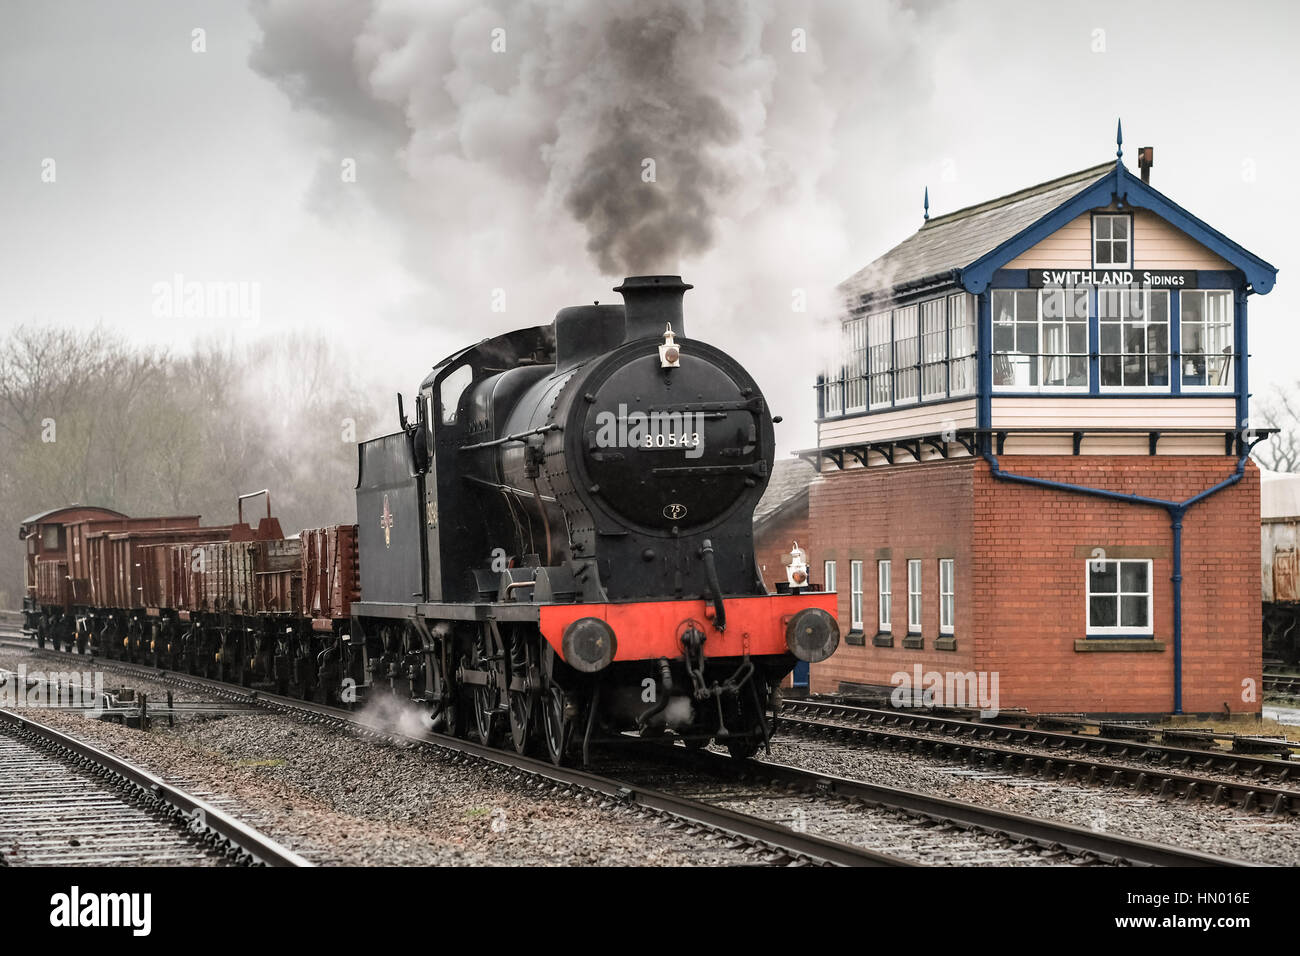 Southern Q Class 0-6-0 No. 30543 passes the Signal Box southbound, Swithland Sidings on the Great Central Railway, - Stock Image